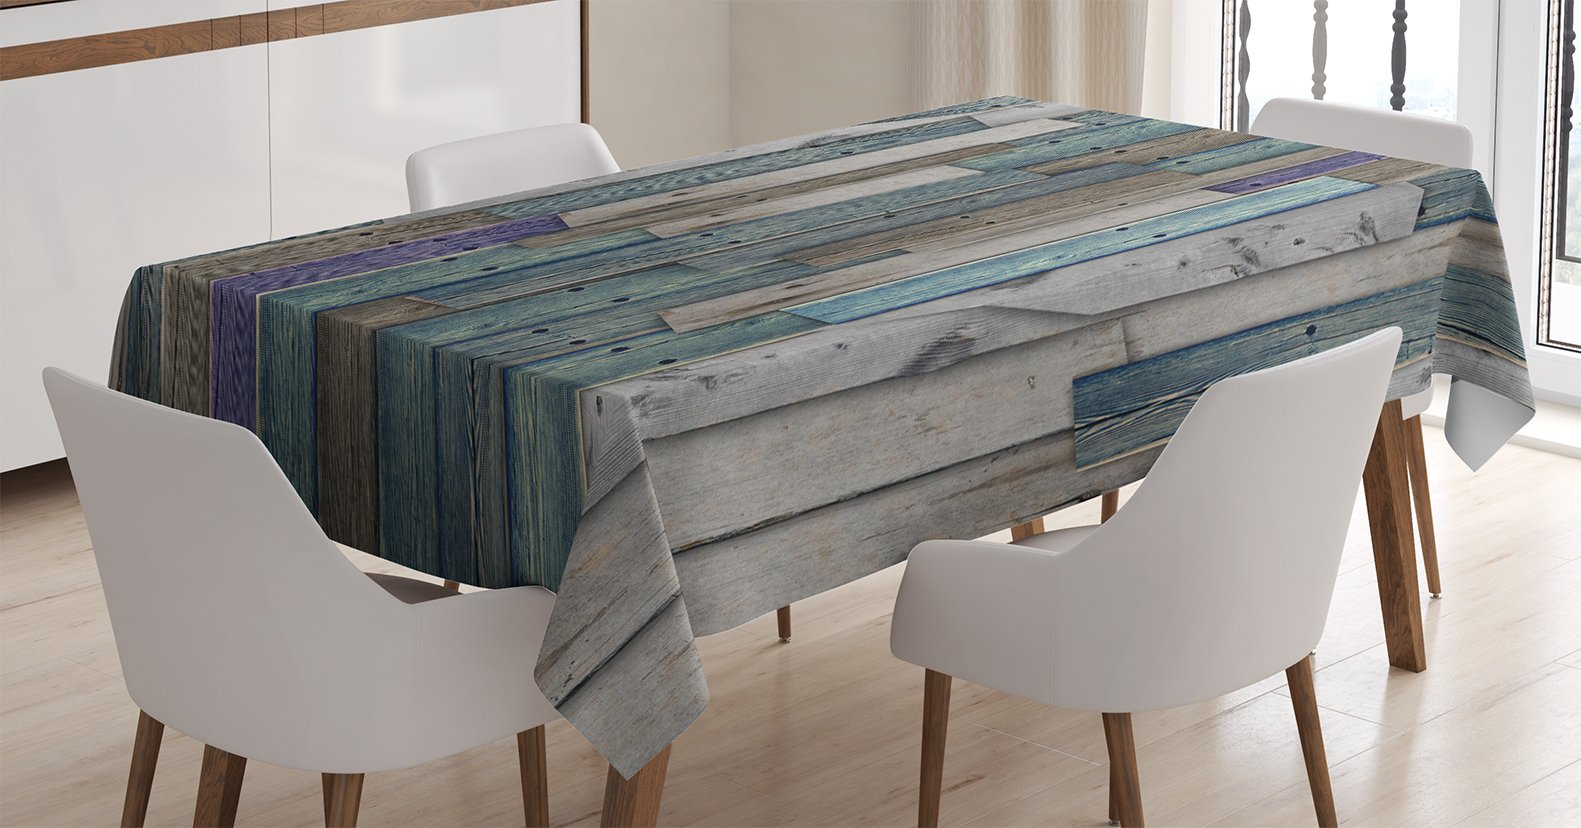 Ambesonne Wooden Tablecloth, Blue Grey Grunge Rustic Planks Barn House Wood and Nails Lodge Hardwood Graphic Print, Dining Room Kitchen Rectangular Table Cover, 52 X 70 inches by Ambesonne (Image #1)